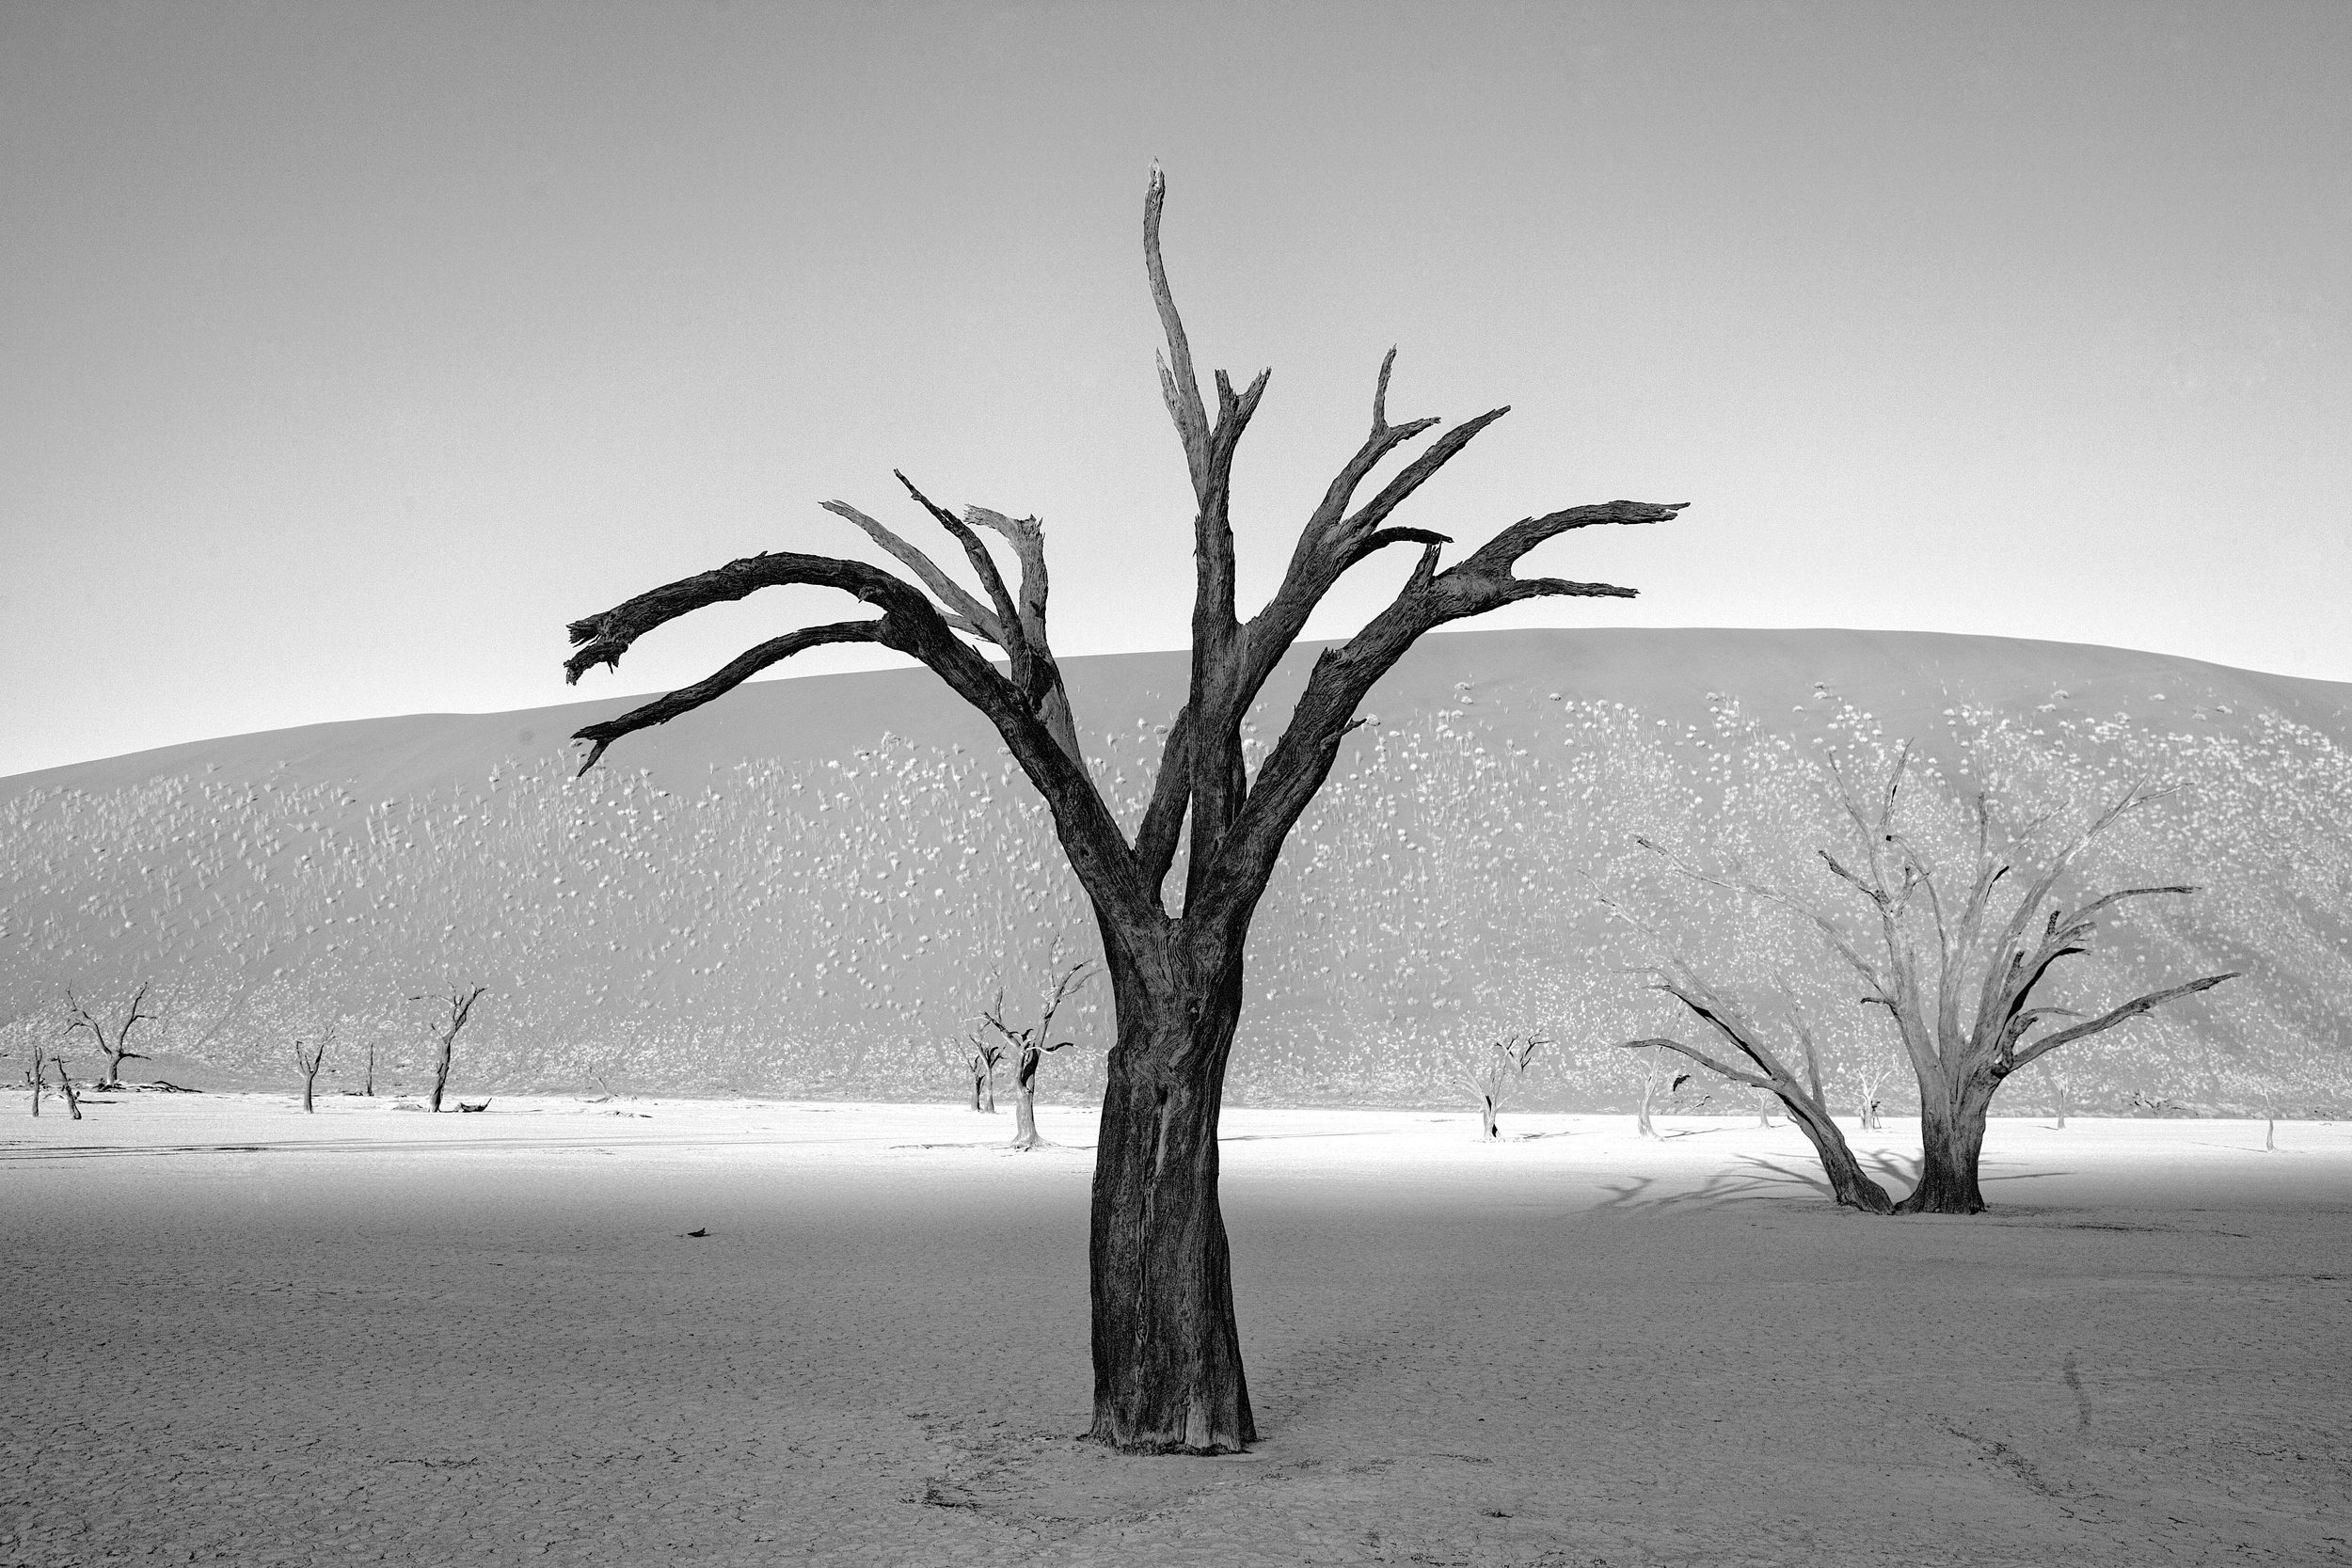 _MG_5772.CR2namibia2008-bw.jpg